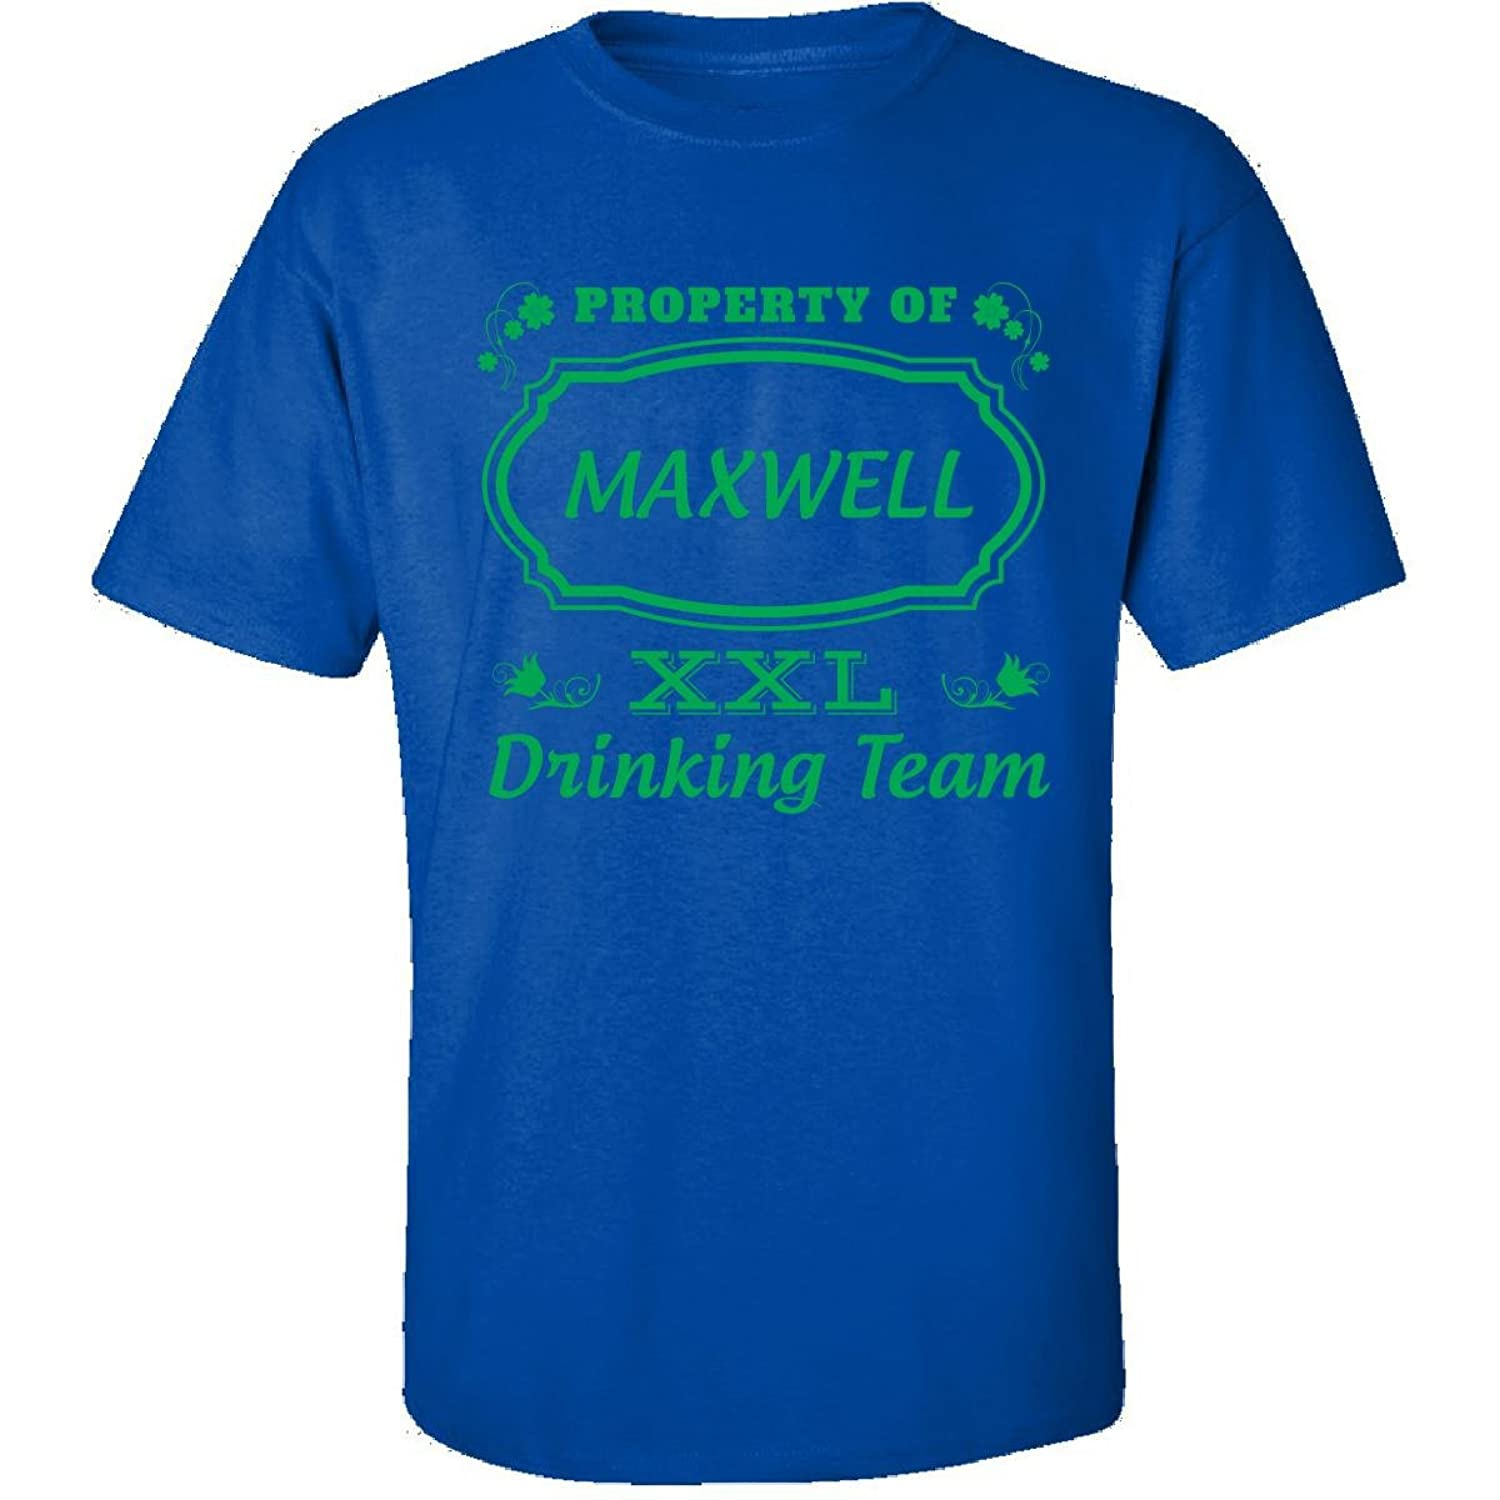 Property Of Maxwell St Patrick Day Beer Drinking Team - Adult Shirt